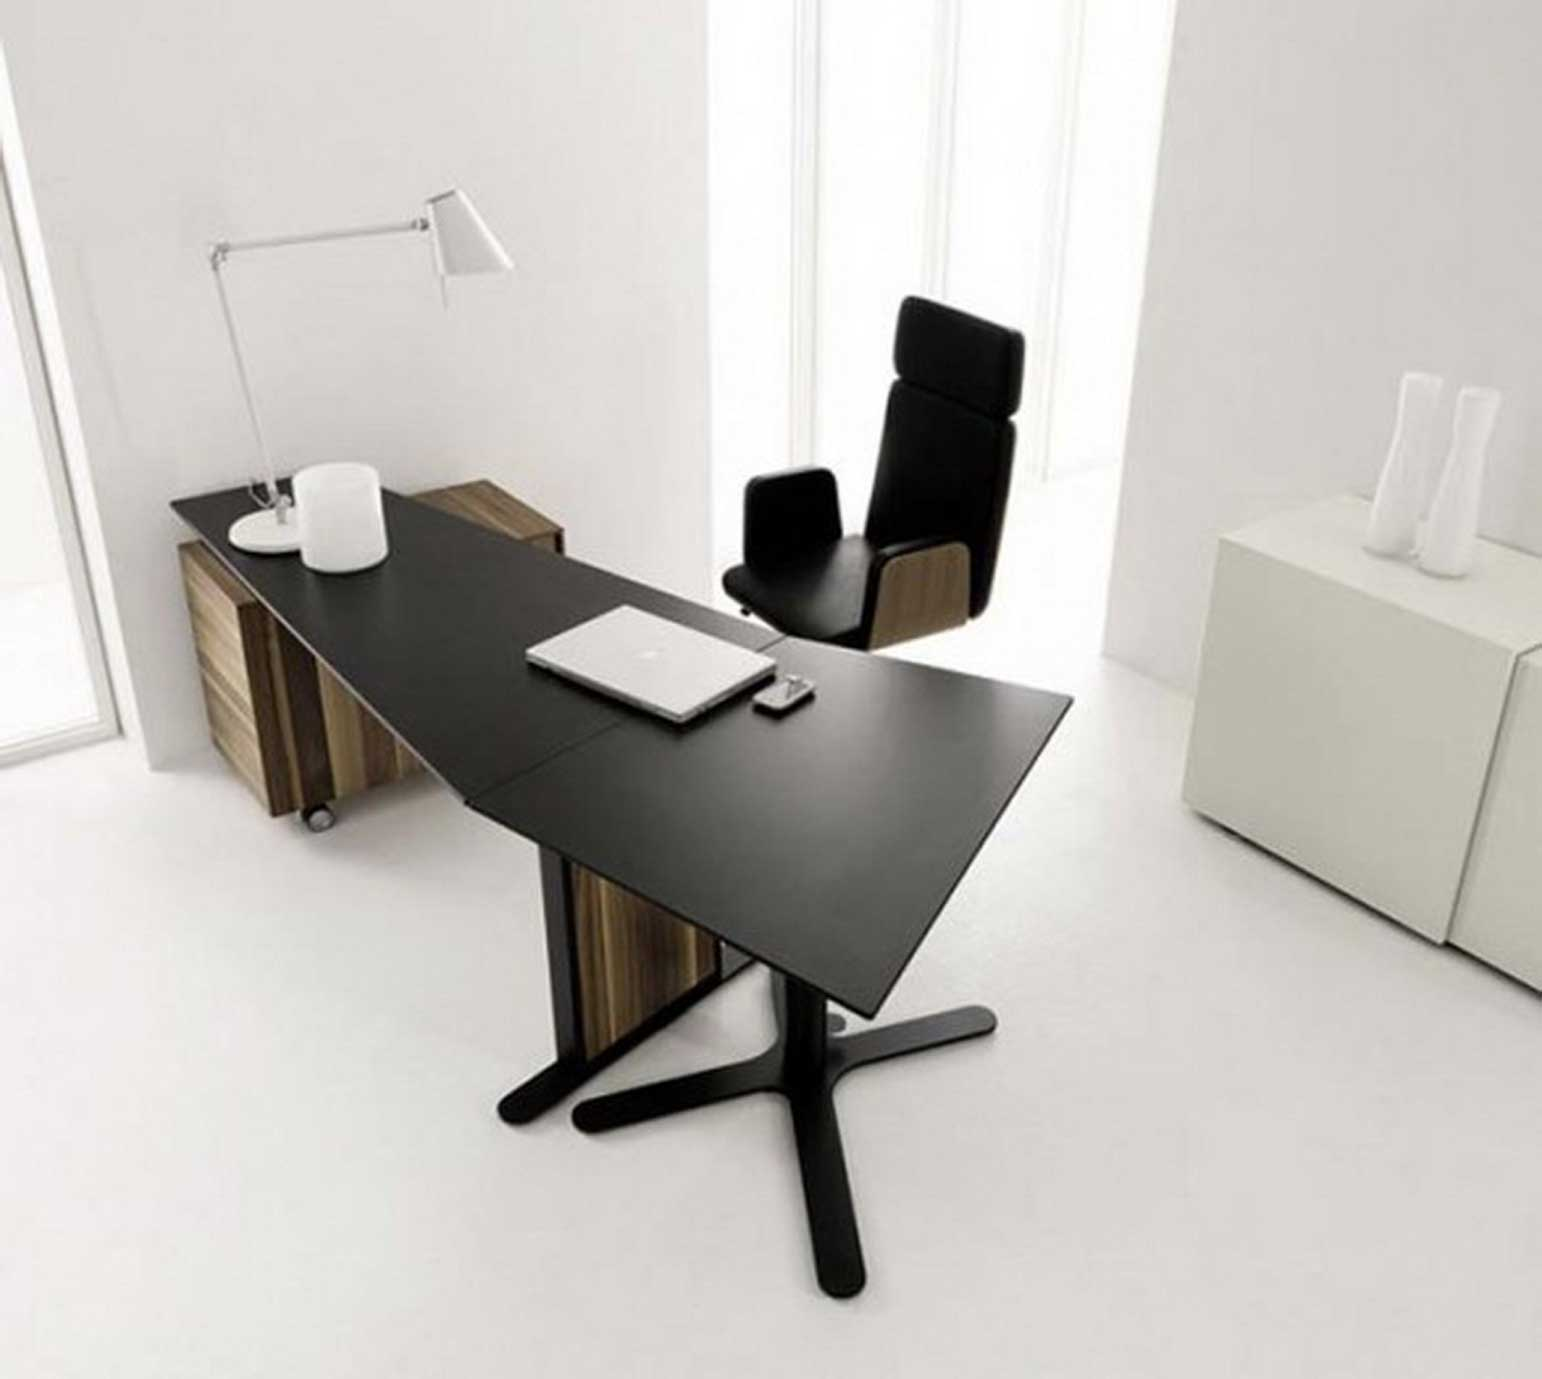 Unique Office Desk Modern With Cool Modern Office Desks For Small Spaces Pics Design Ideas